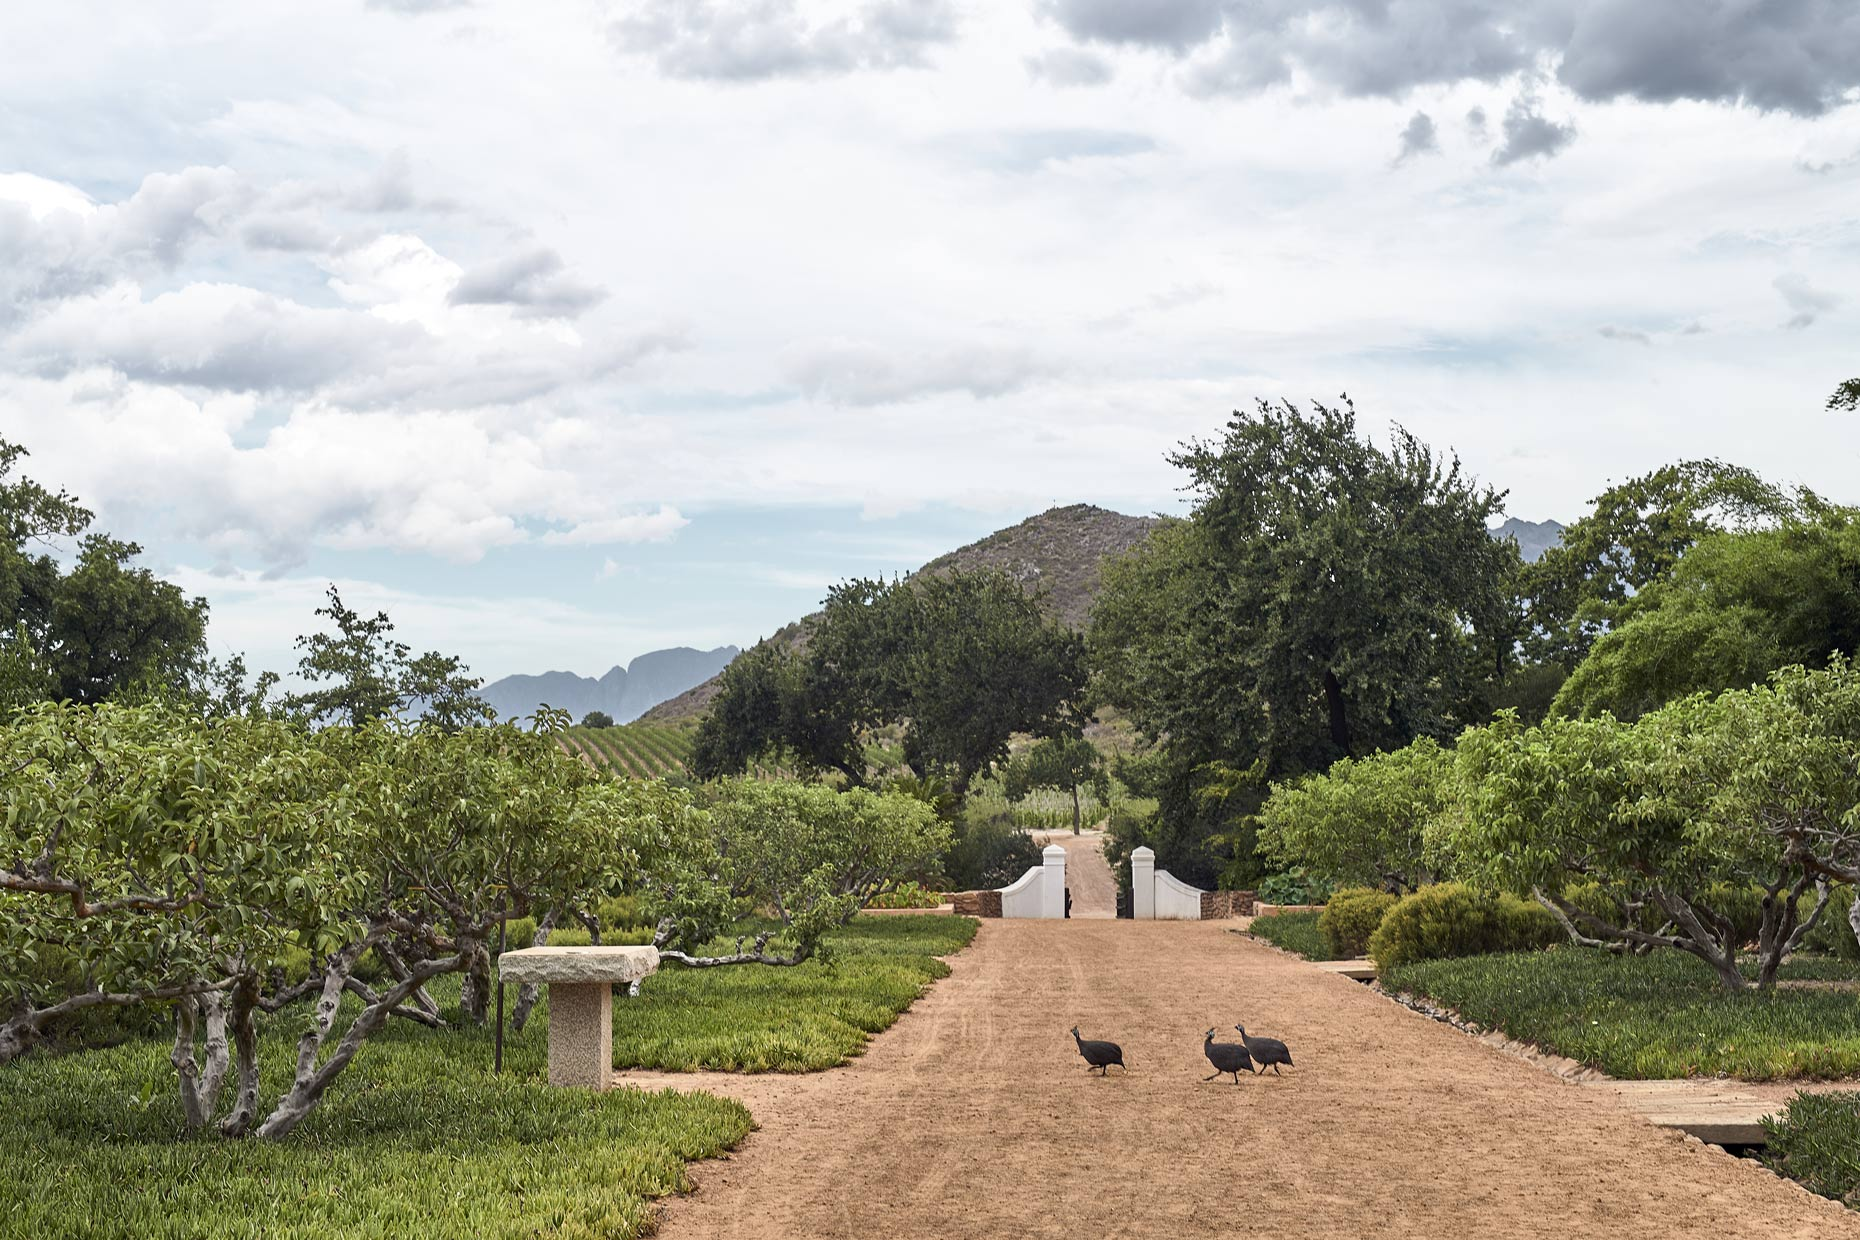 Babylonstoren-Guinea-Fowl-Walking-Across-Dirt-Path